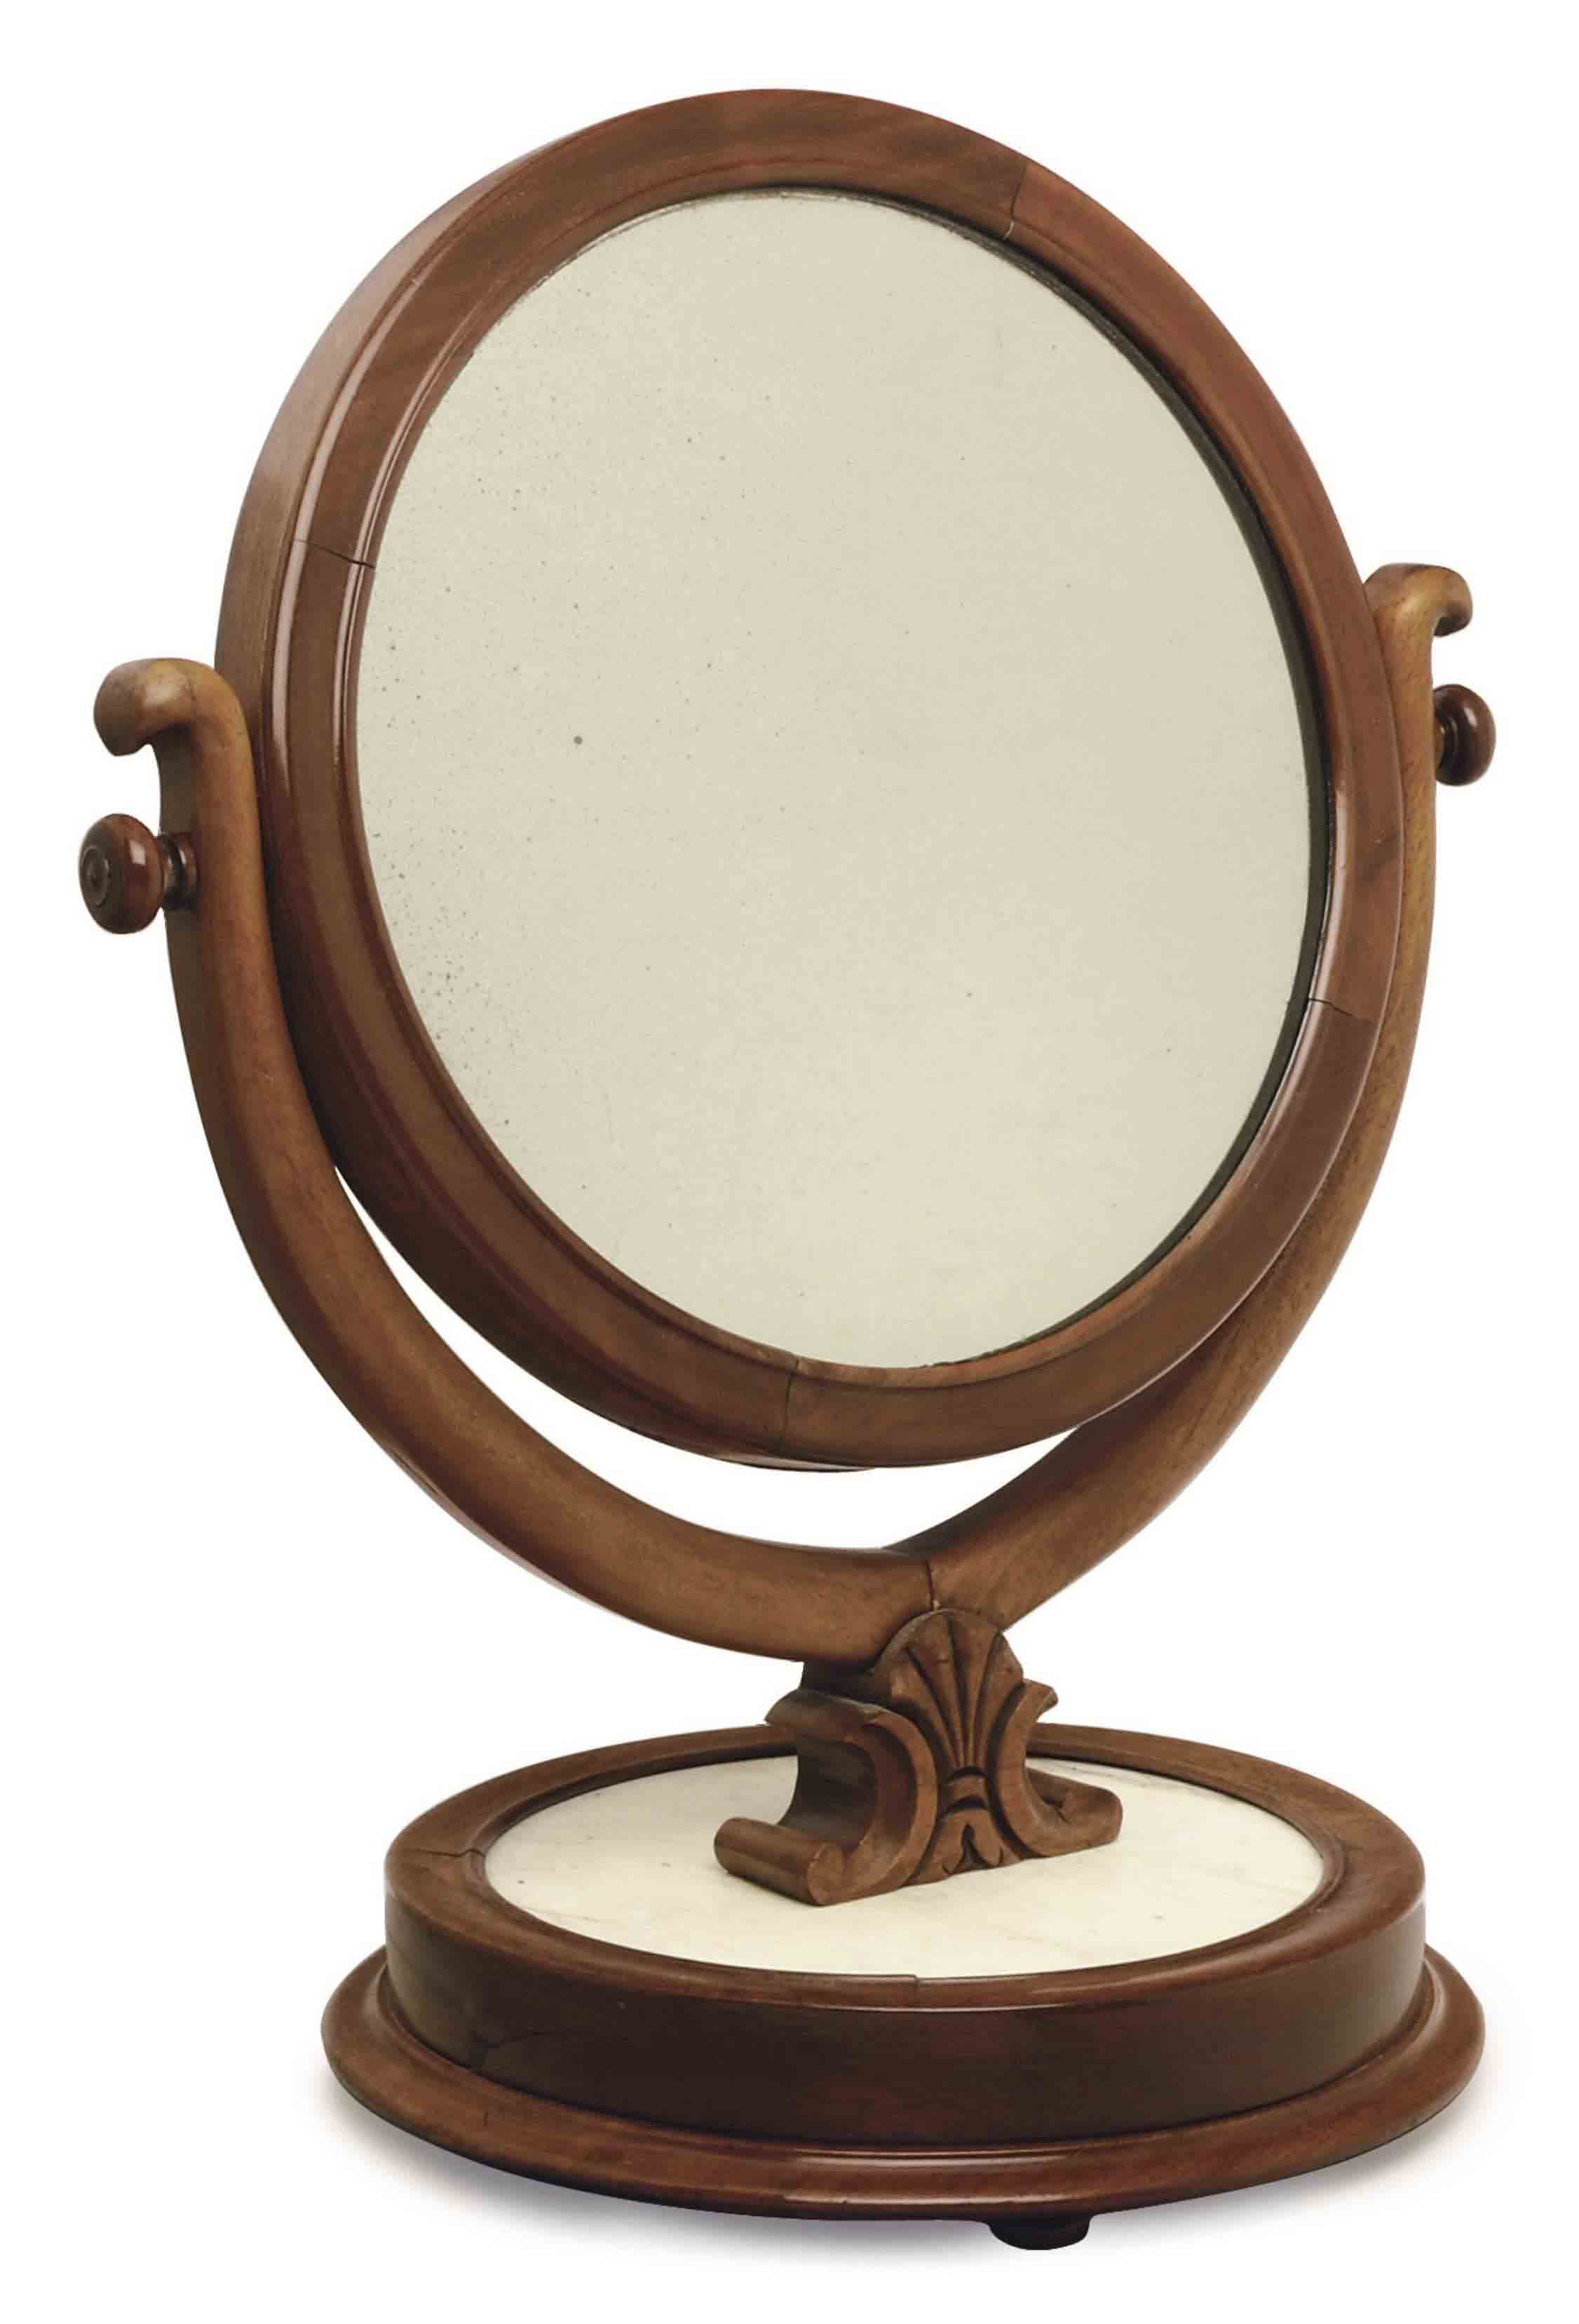 AN AMERICAN MAHOGANY AND WHITE MARBLE GENTLEMAN'S DRESSING MIRROR,